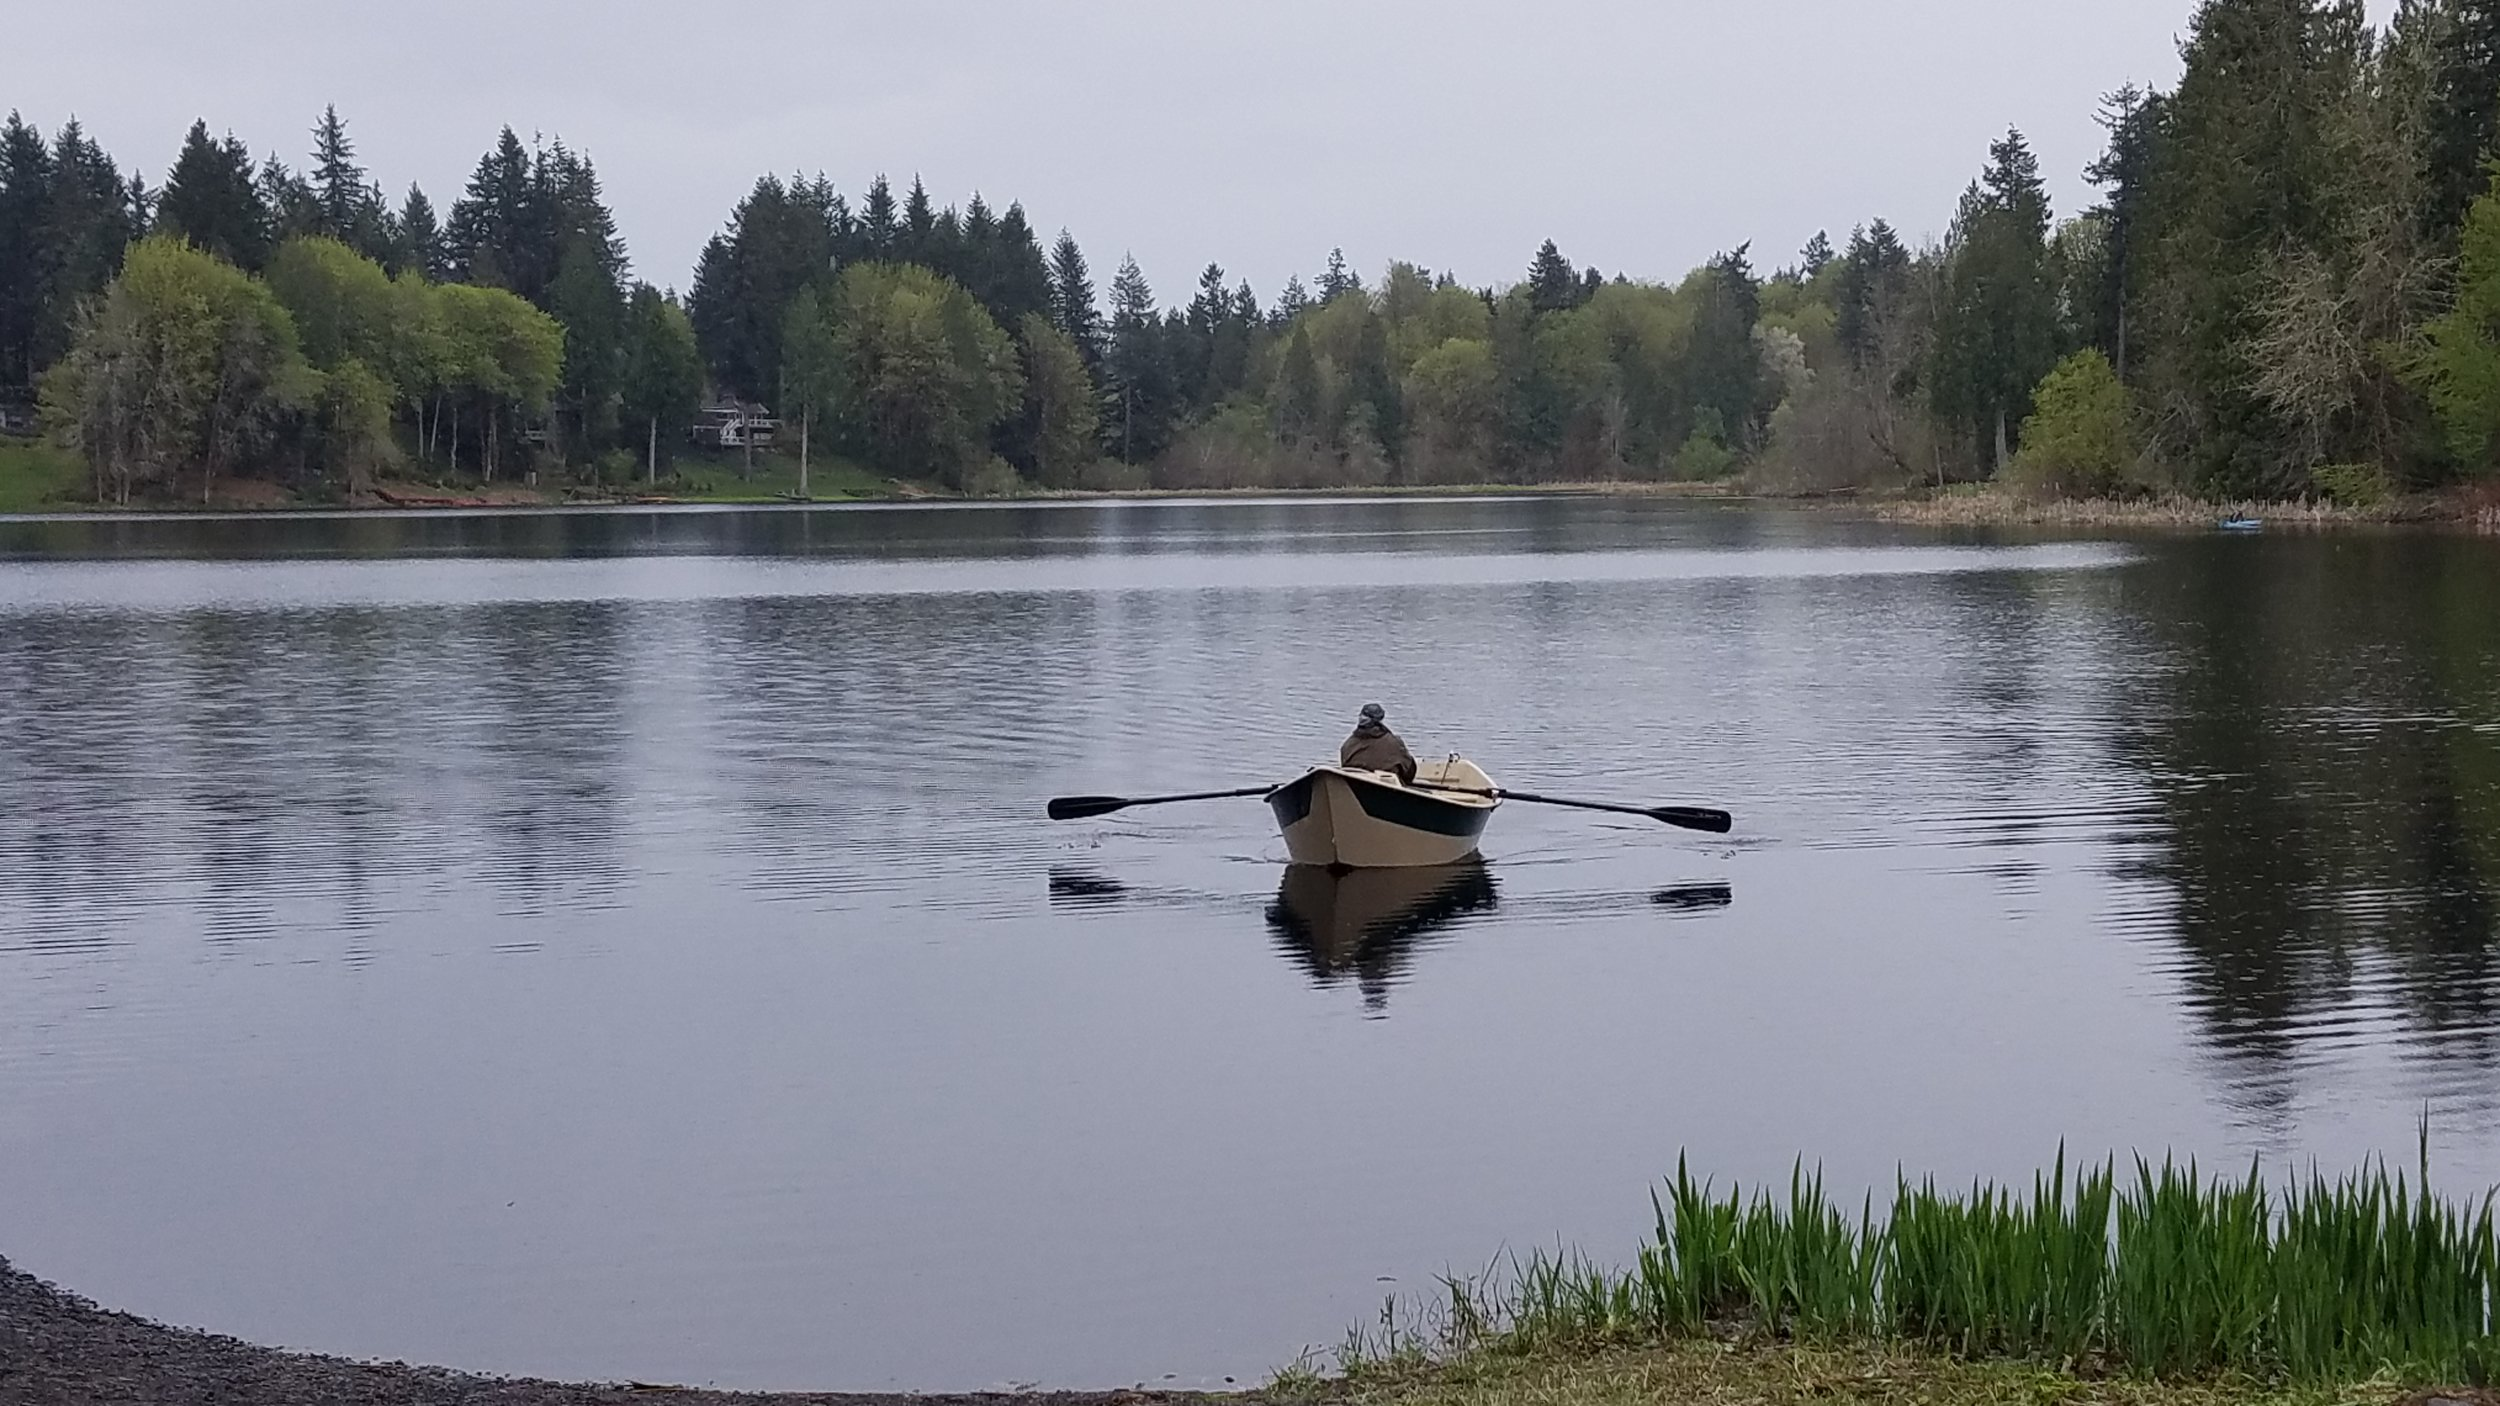 Such a lovely old-fashioned-looking boat that turned Munn Lake into an idyllic scene on Friday afternoon.